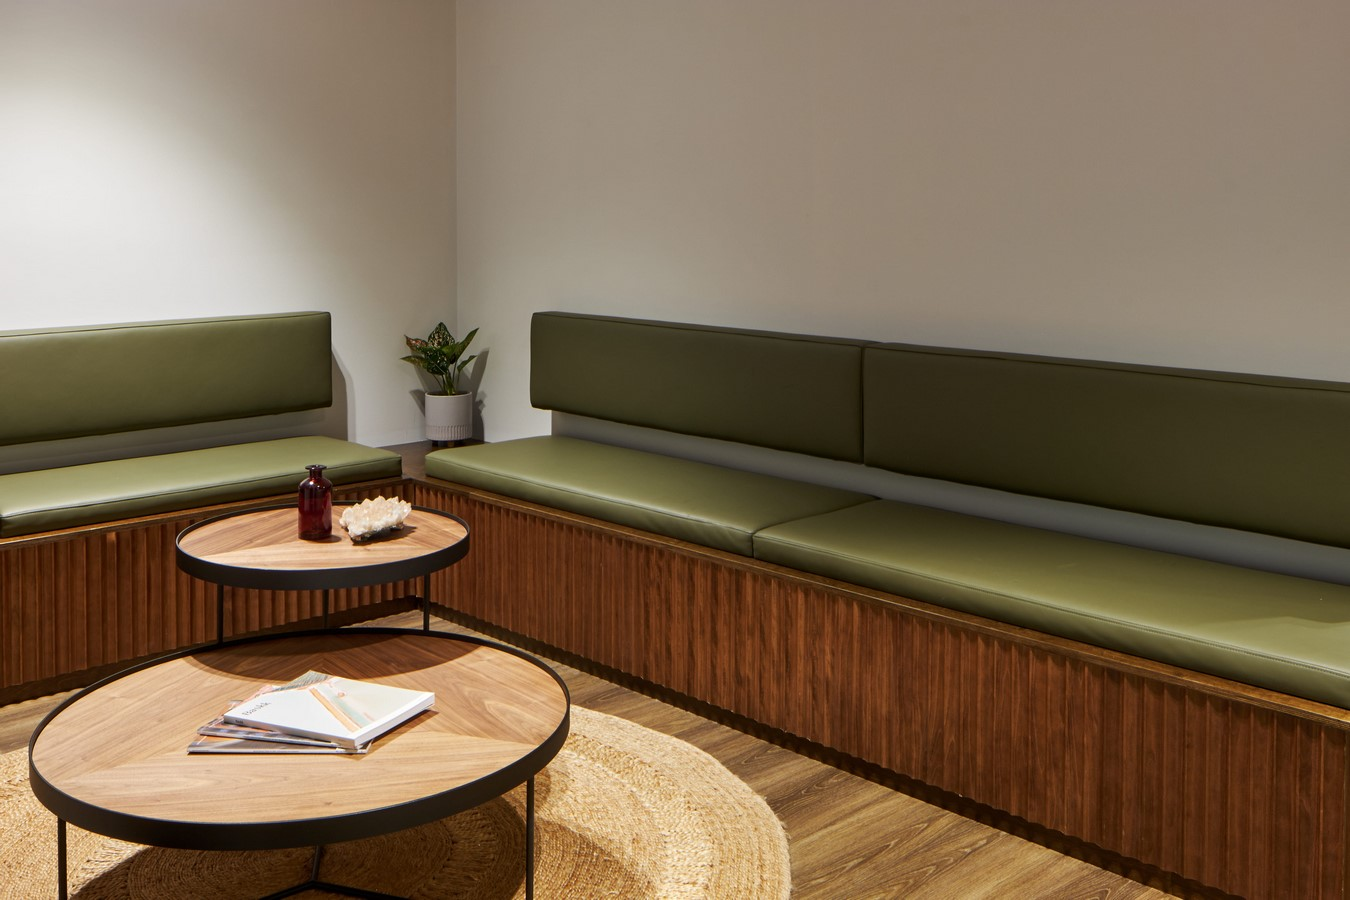 5109 Liverpool Medical Suite by Studio P - Architecture & Interiors: Sheet 3